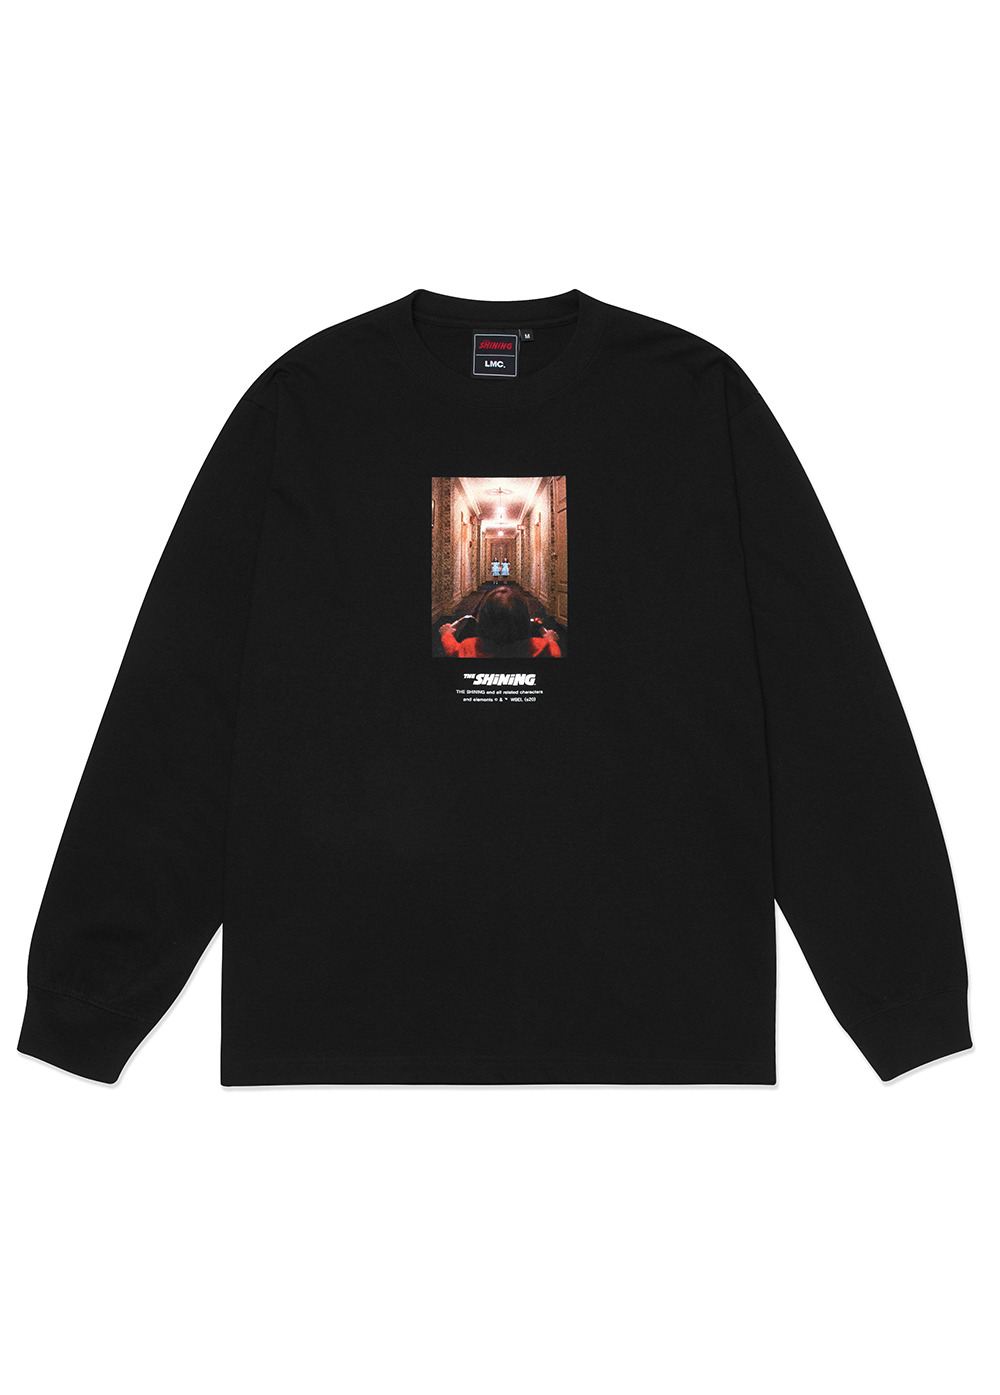 LMC│THE SHINING HALLWAY PHOTO LONG SLV TEE black